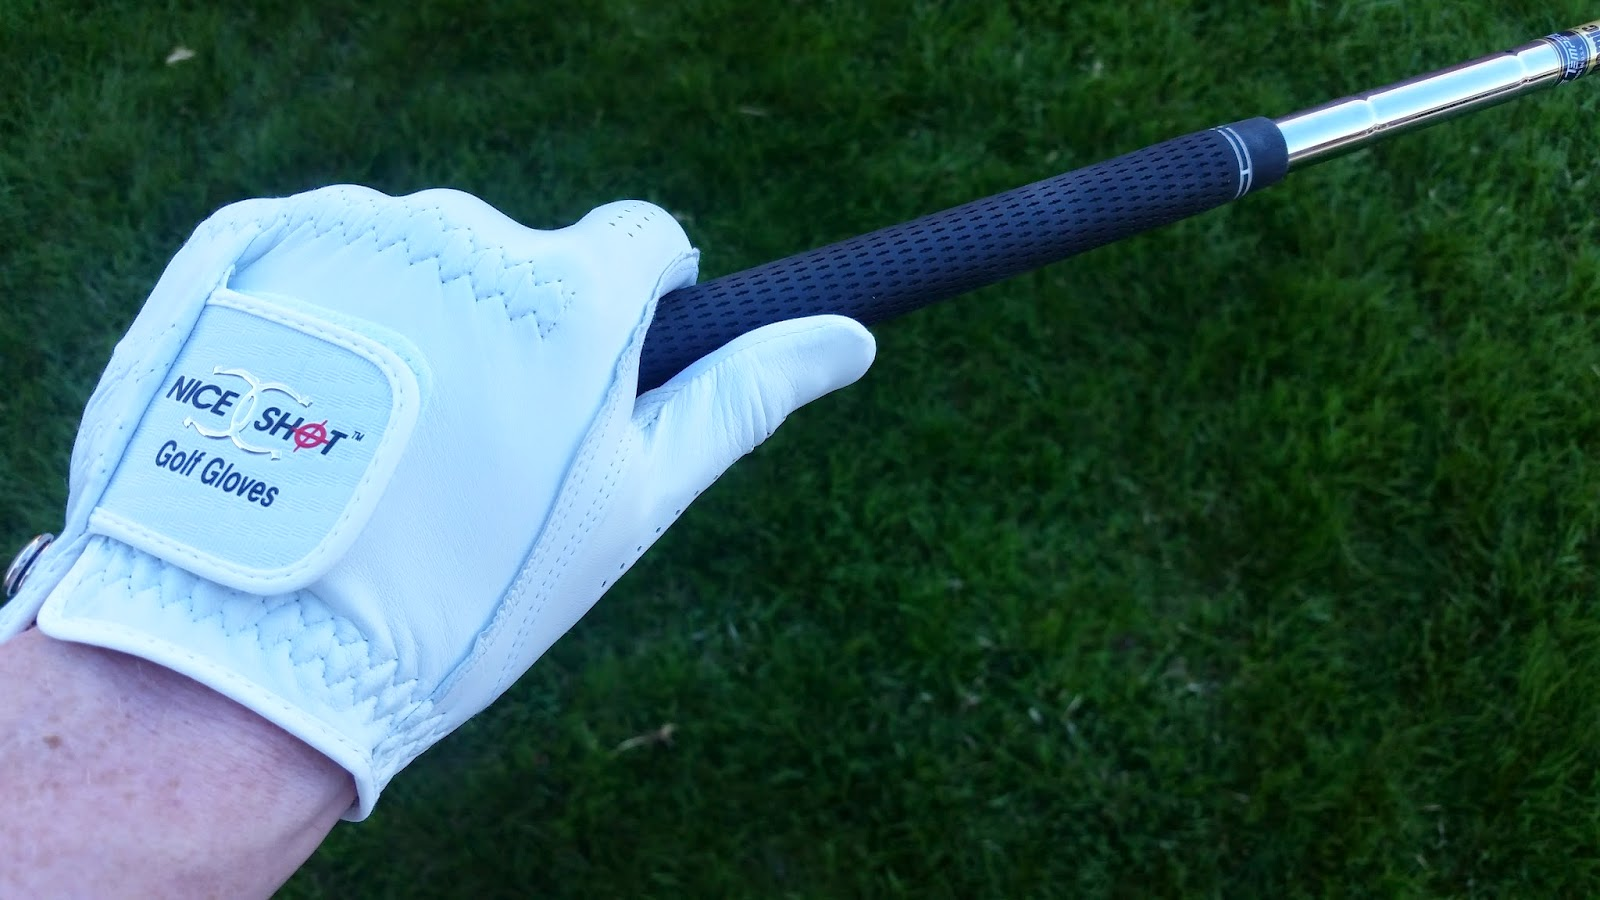 Nice Shot golf glove